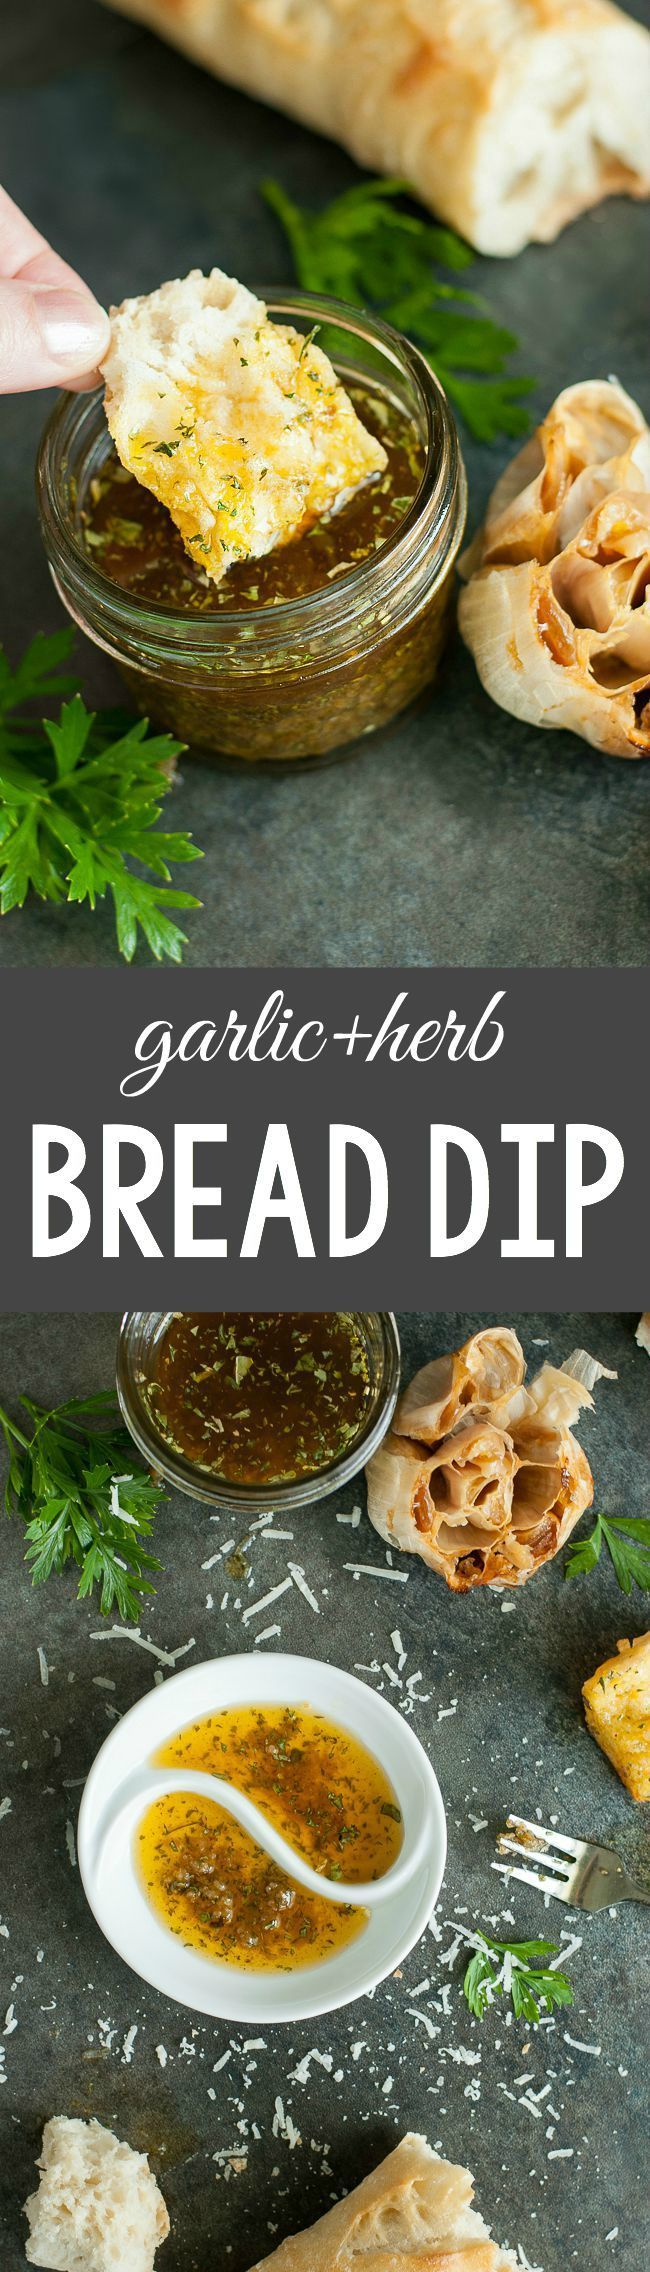 olive oil garlic and herb bread dip